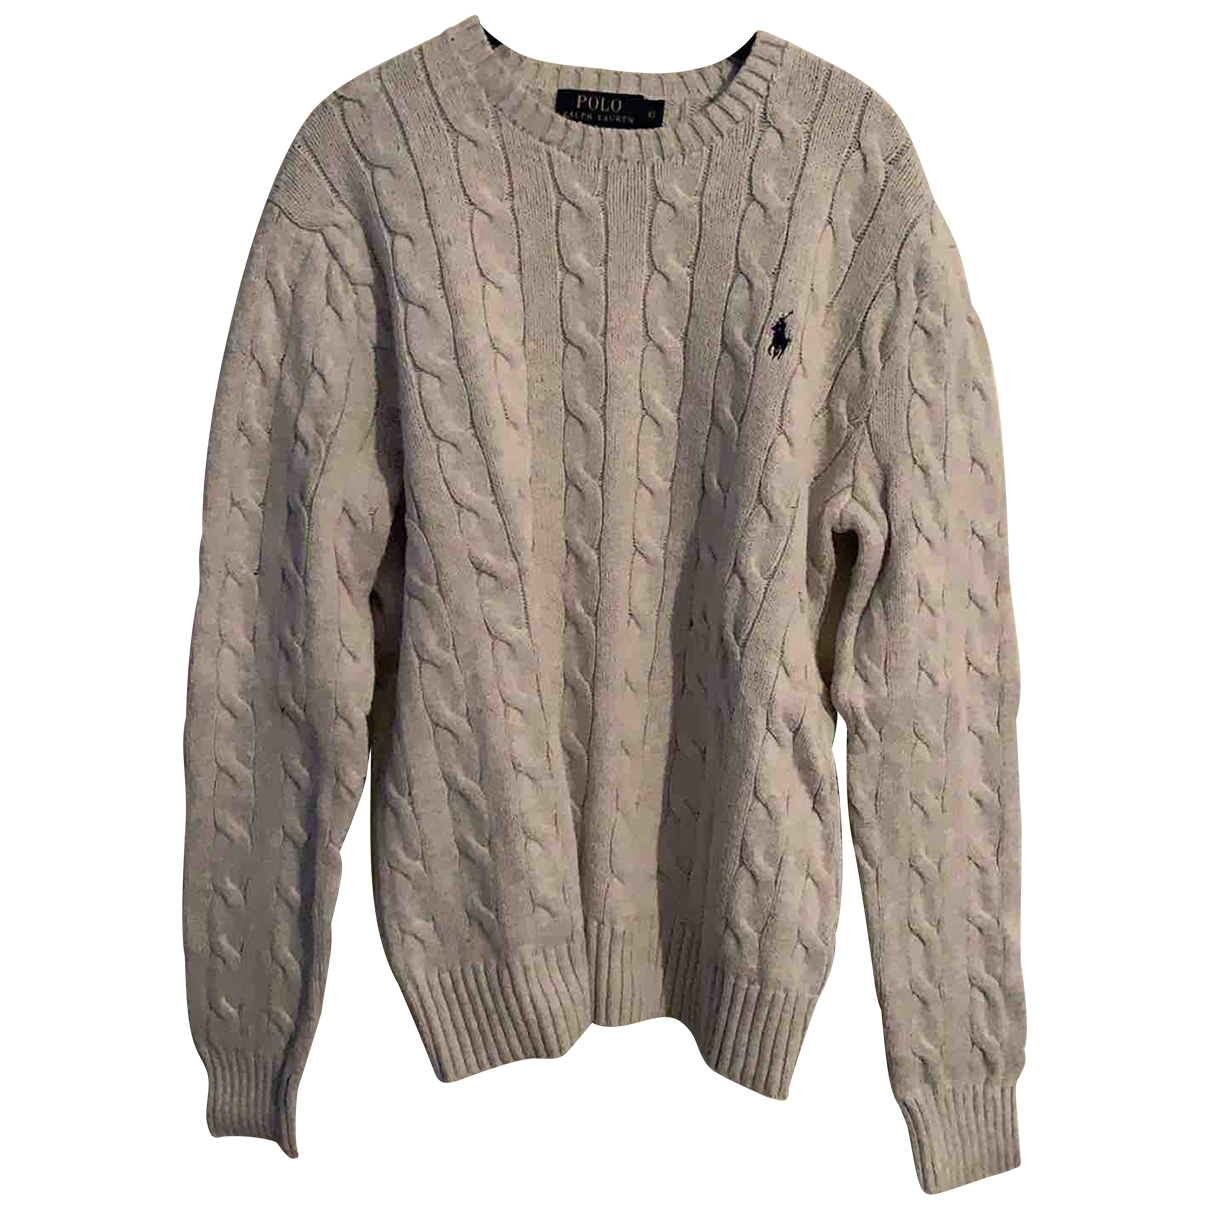 Polo Ralph Lauren \N Beige Cotton Knitwear & Sweatshirts for Men XS International